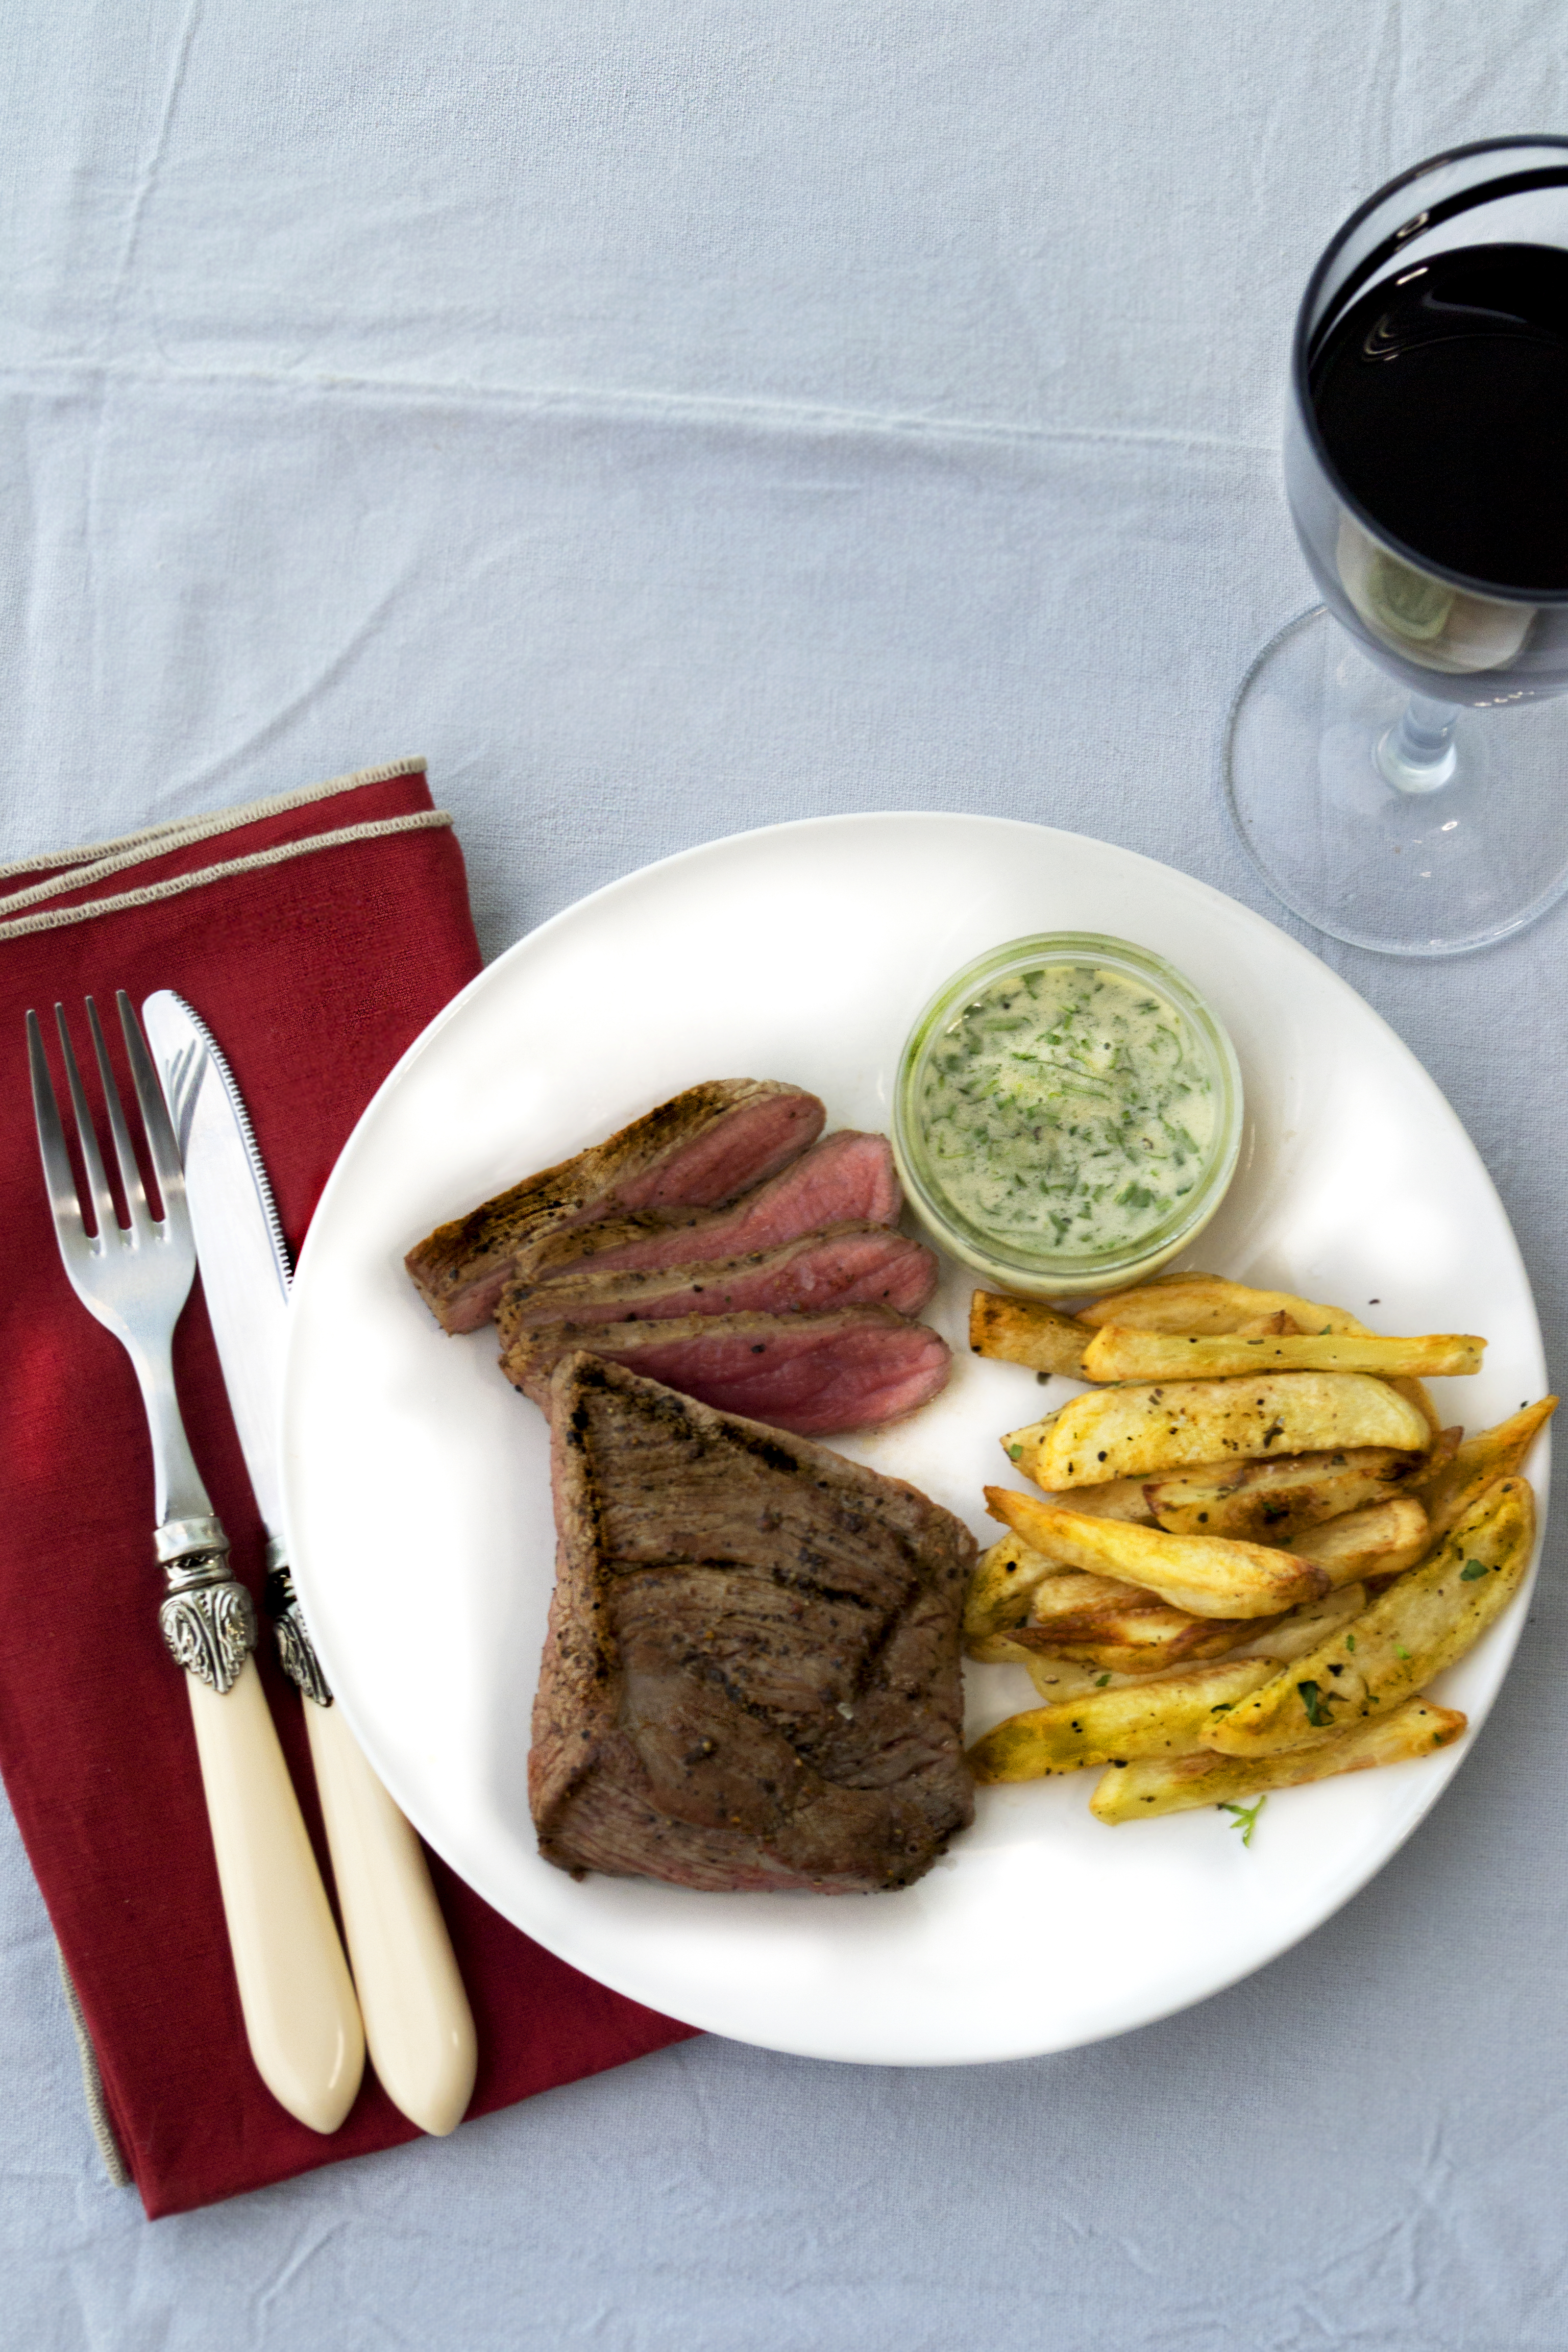 steak chips, steak frites, steak bearnaise, bavette bearnaise, gastrogays steak, gay times recipe, gay times magazine food, simple steak recipe, rustic steak recipe